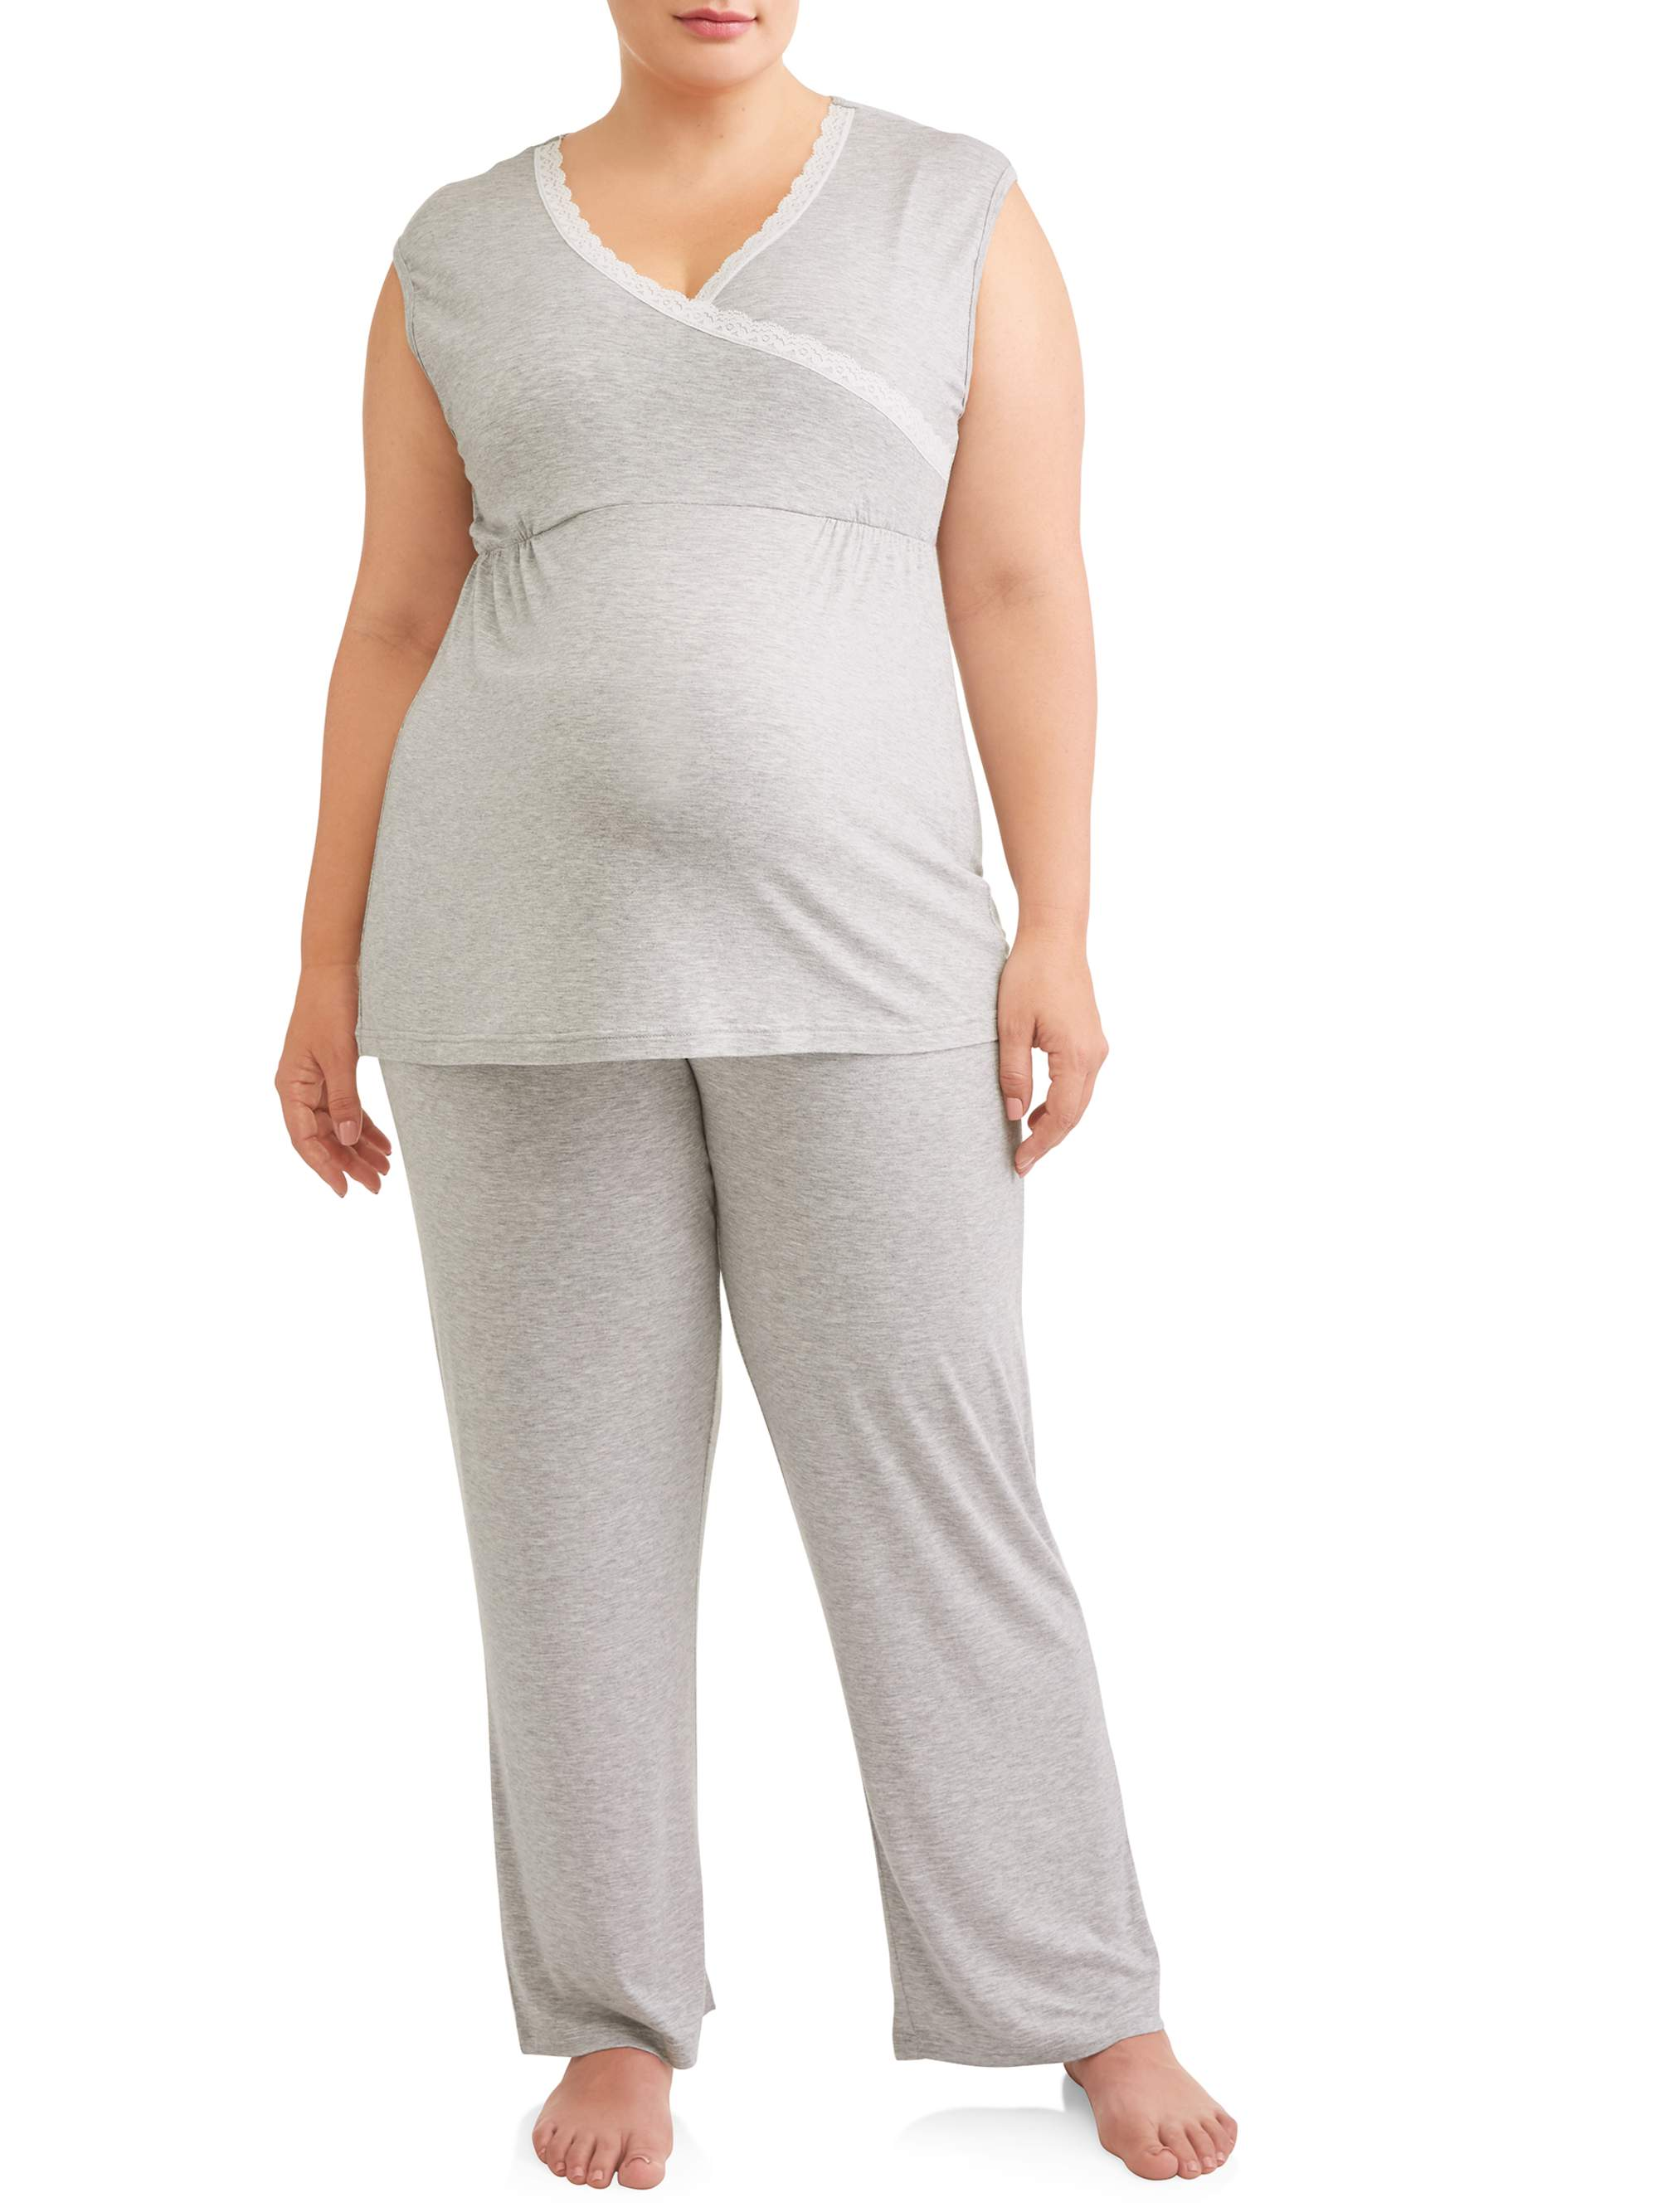 Nurture by Lamaze Maternity Nursing Sleeveless Lace Trim Top and Pants Sleep Set - Available in Plus Size